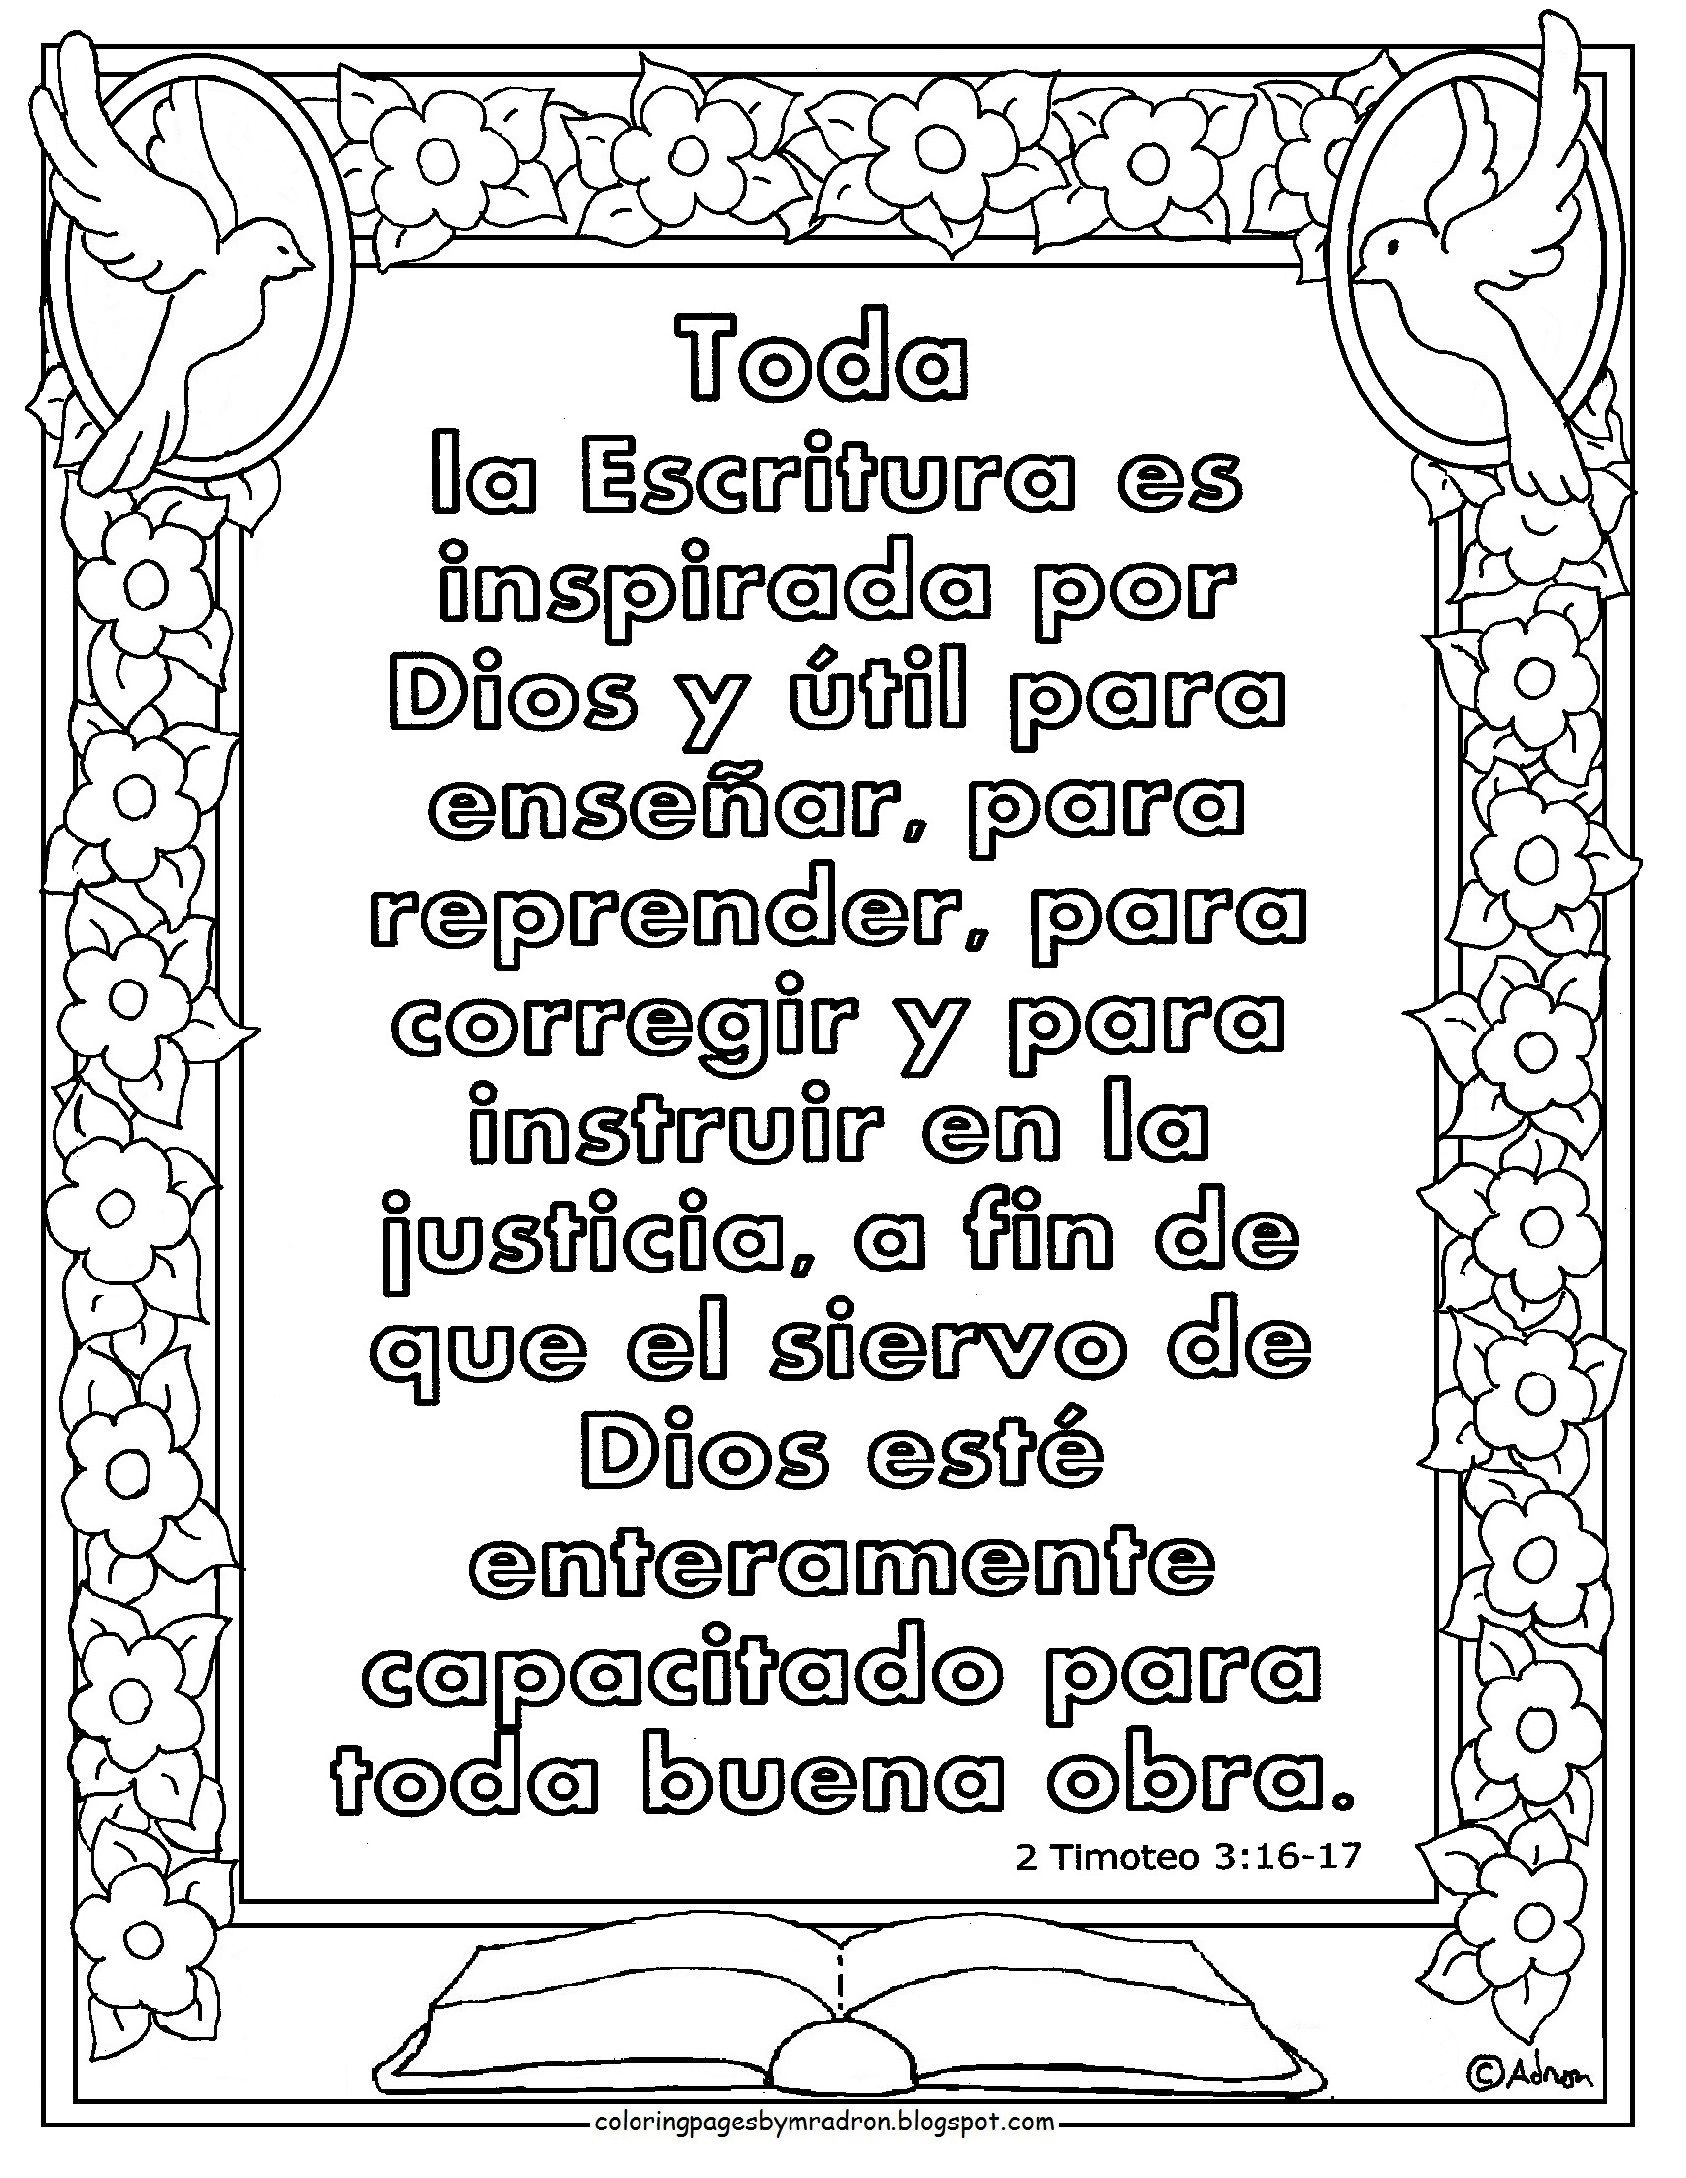 free bible coloring pages in spanish | Spanish print and color page for the Bible Verse in 2 ...